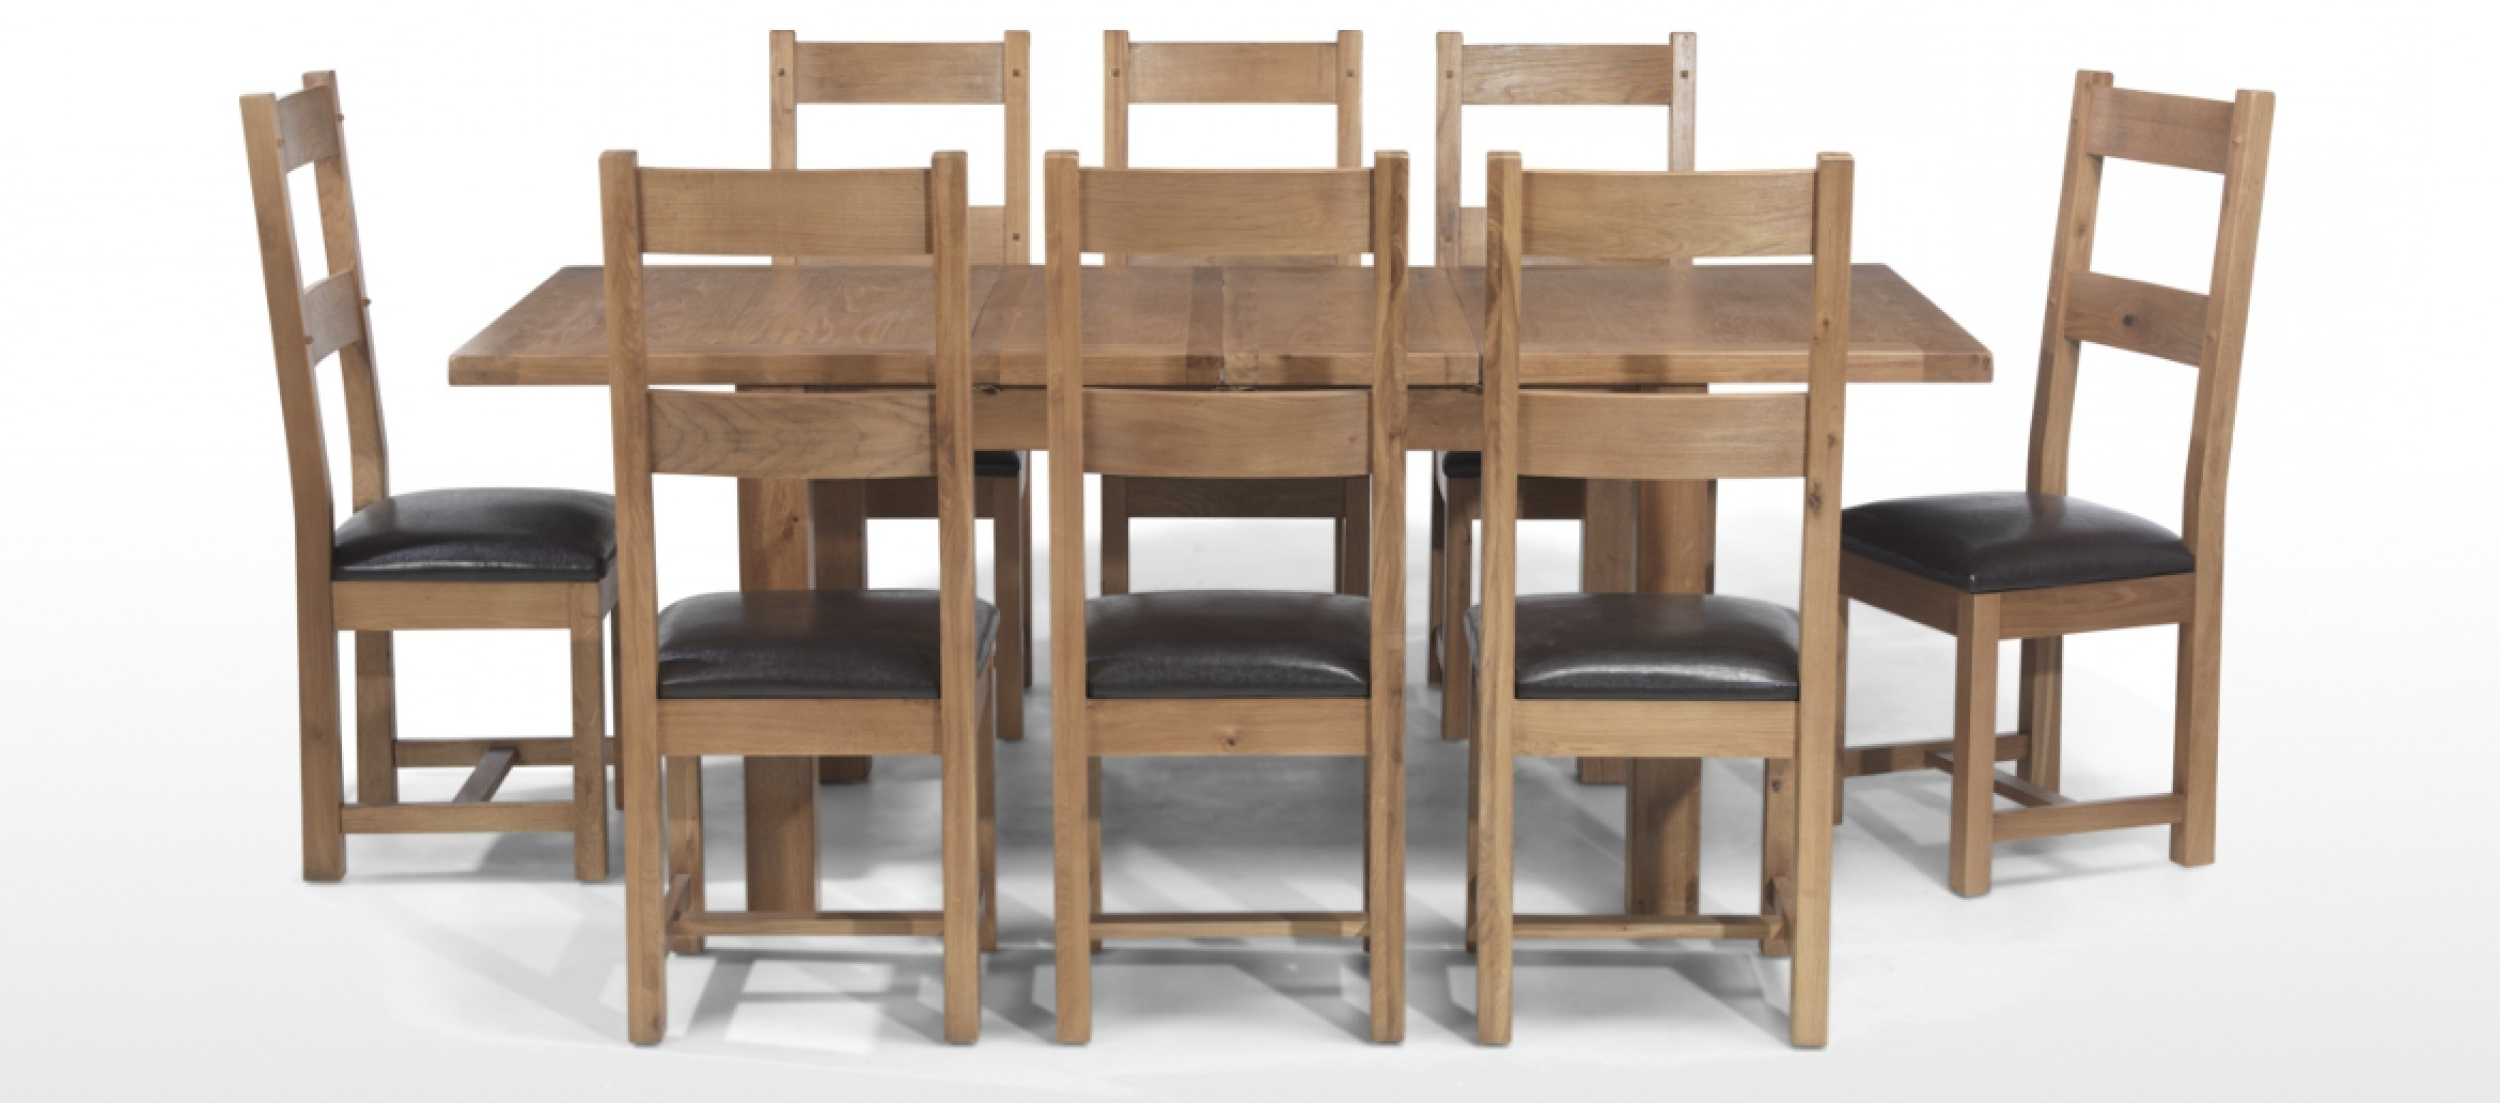 Quercus Pertaining To Dining Tables 8 Chairs (View 8 of 25)